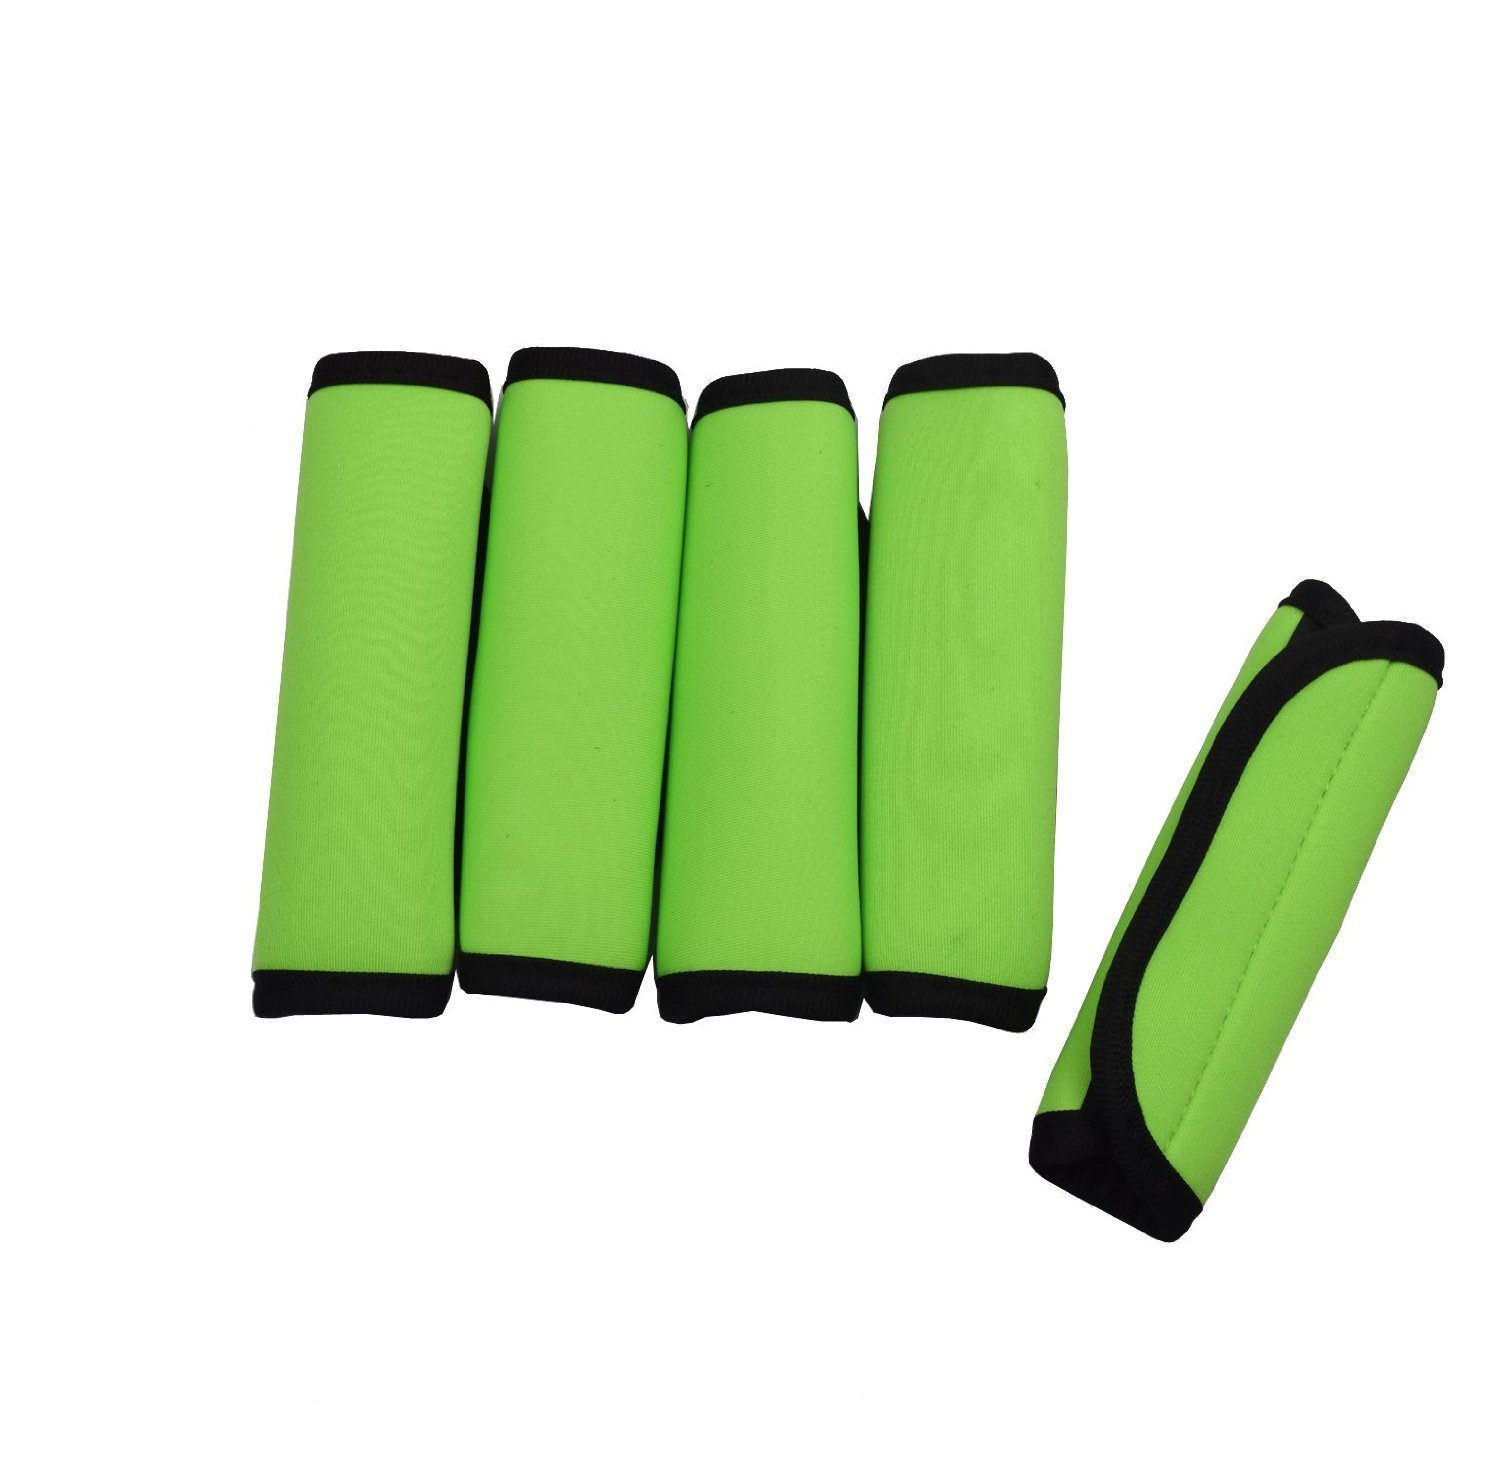 Case Wonder 5 Pack Soft Comfort Neoprene Water-Resistant Handle Wraps //Grip Green Identifier Hand Luggage for Travel Bag Luggage Suitcase